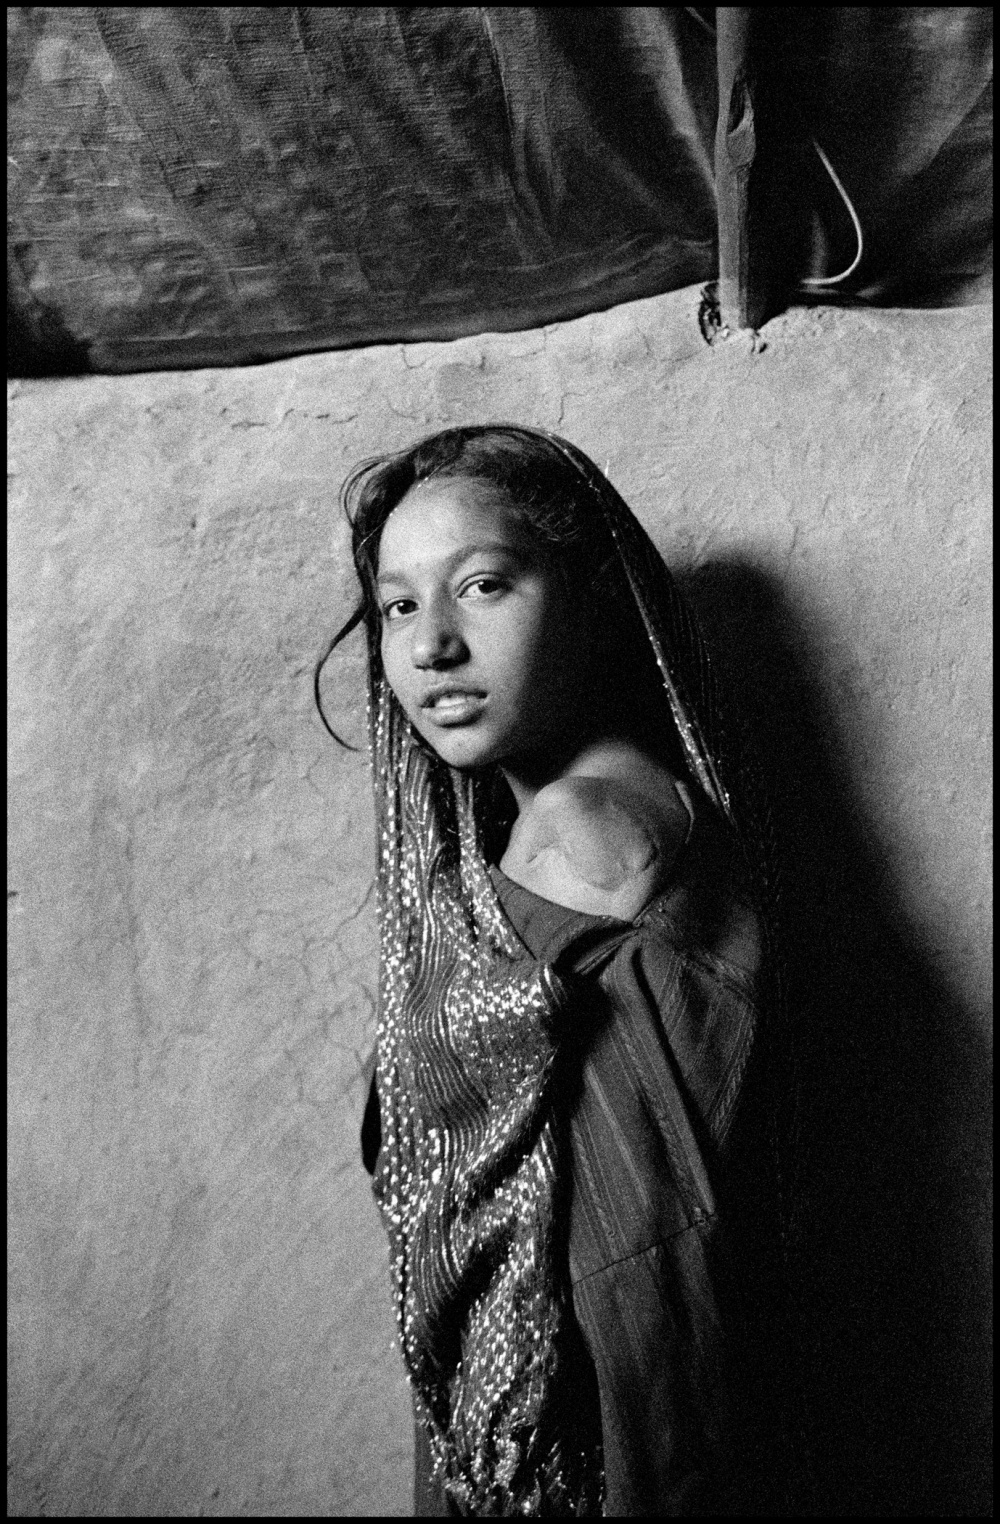 Larry Towell, Ten year old Gul Juma lost her arm as well as relatives during the bombing of Helmand Province, Charahi Qambar Refugee Camp, Kabul, Afghanistan  © Larry Towell/Magnum Photos